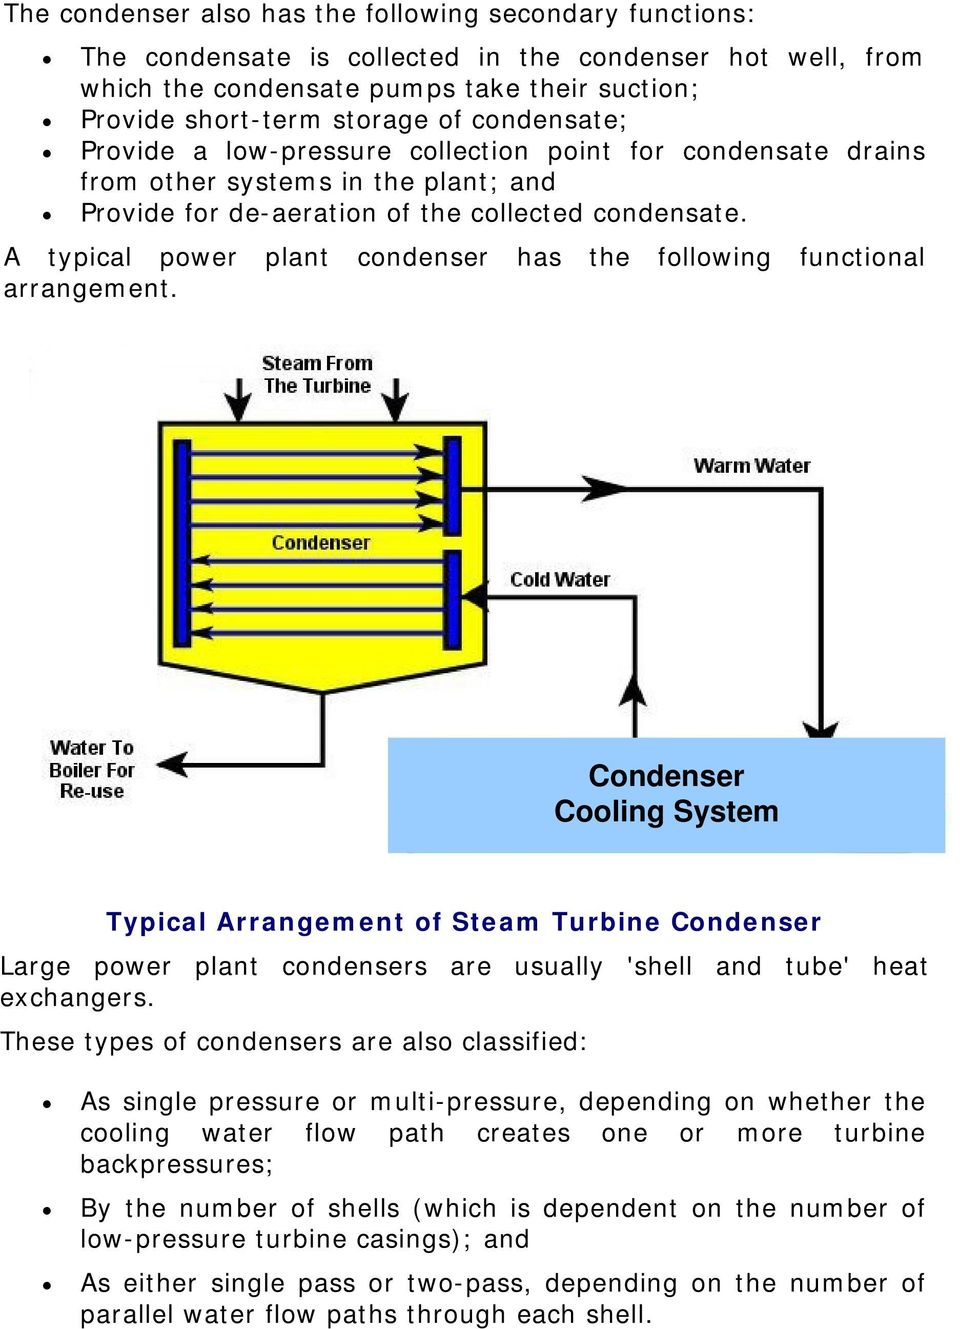 A typical power plant condenser has the following functional arrangement.